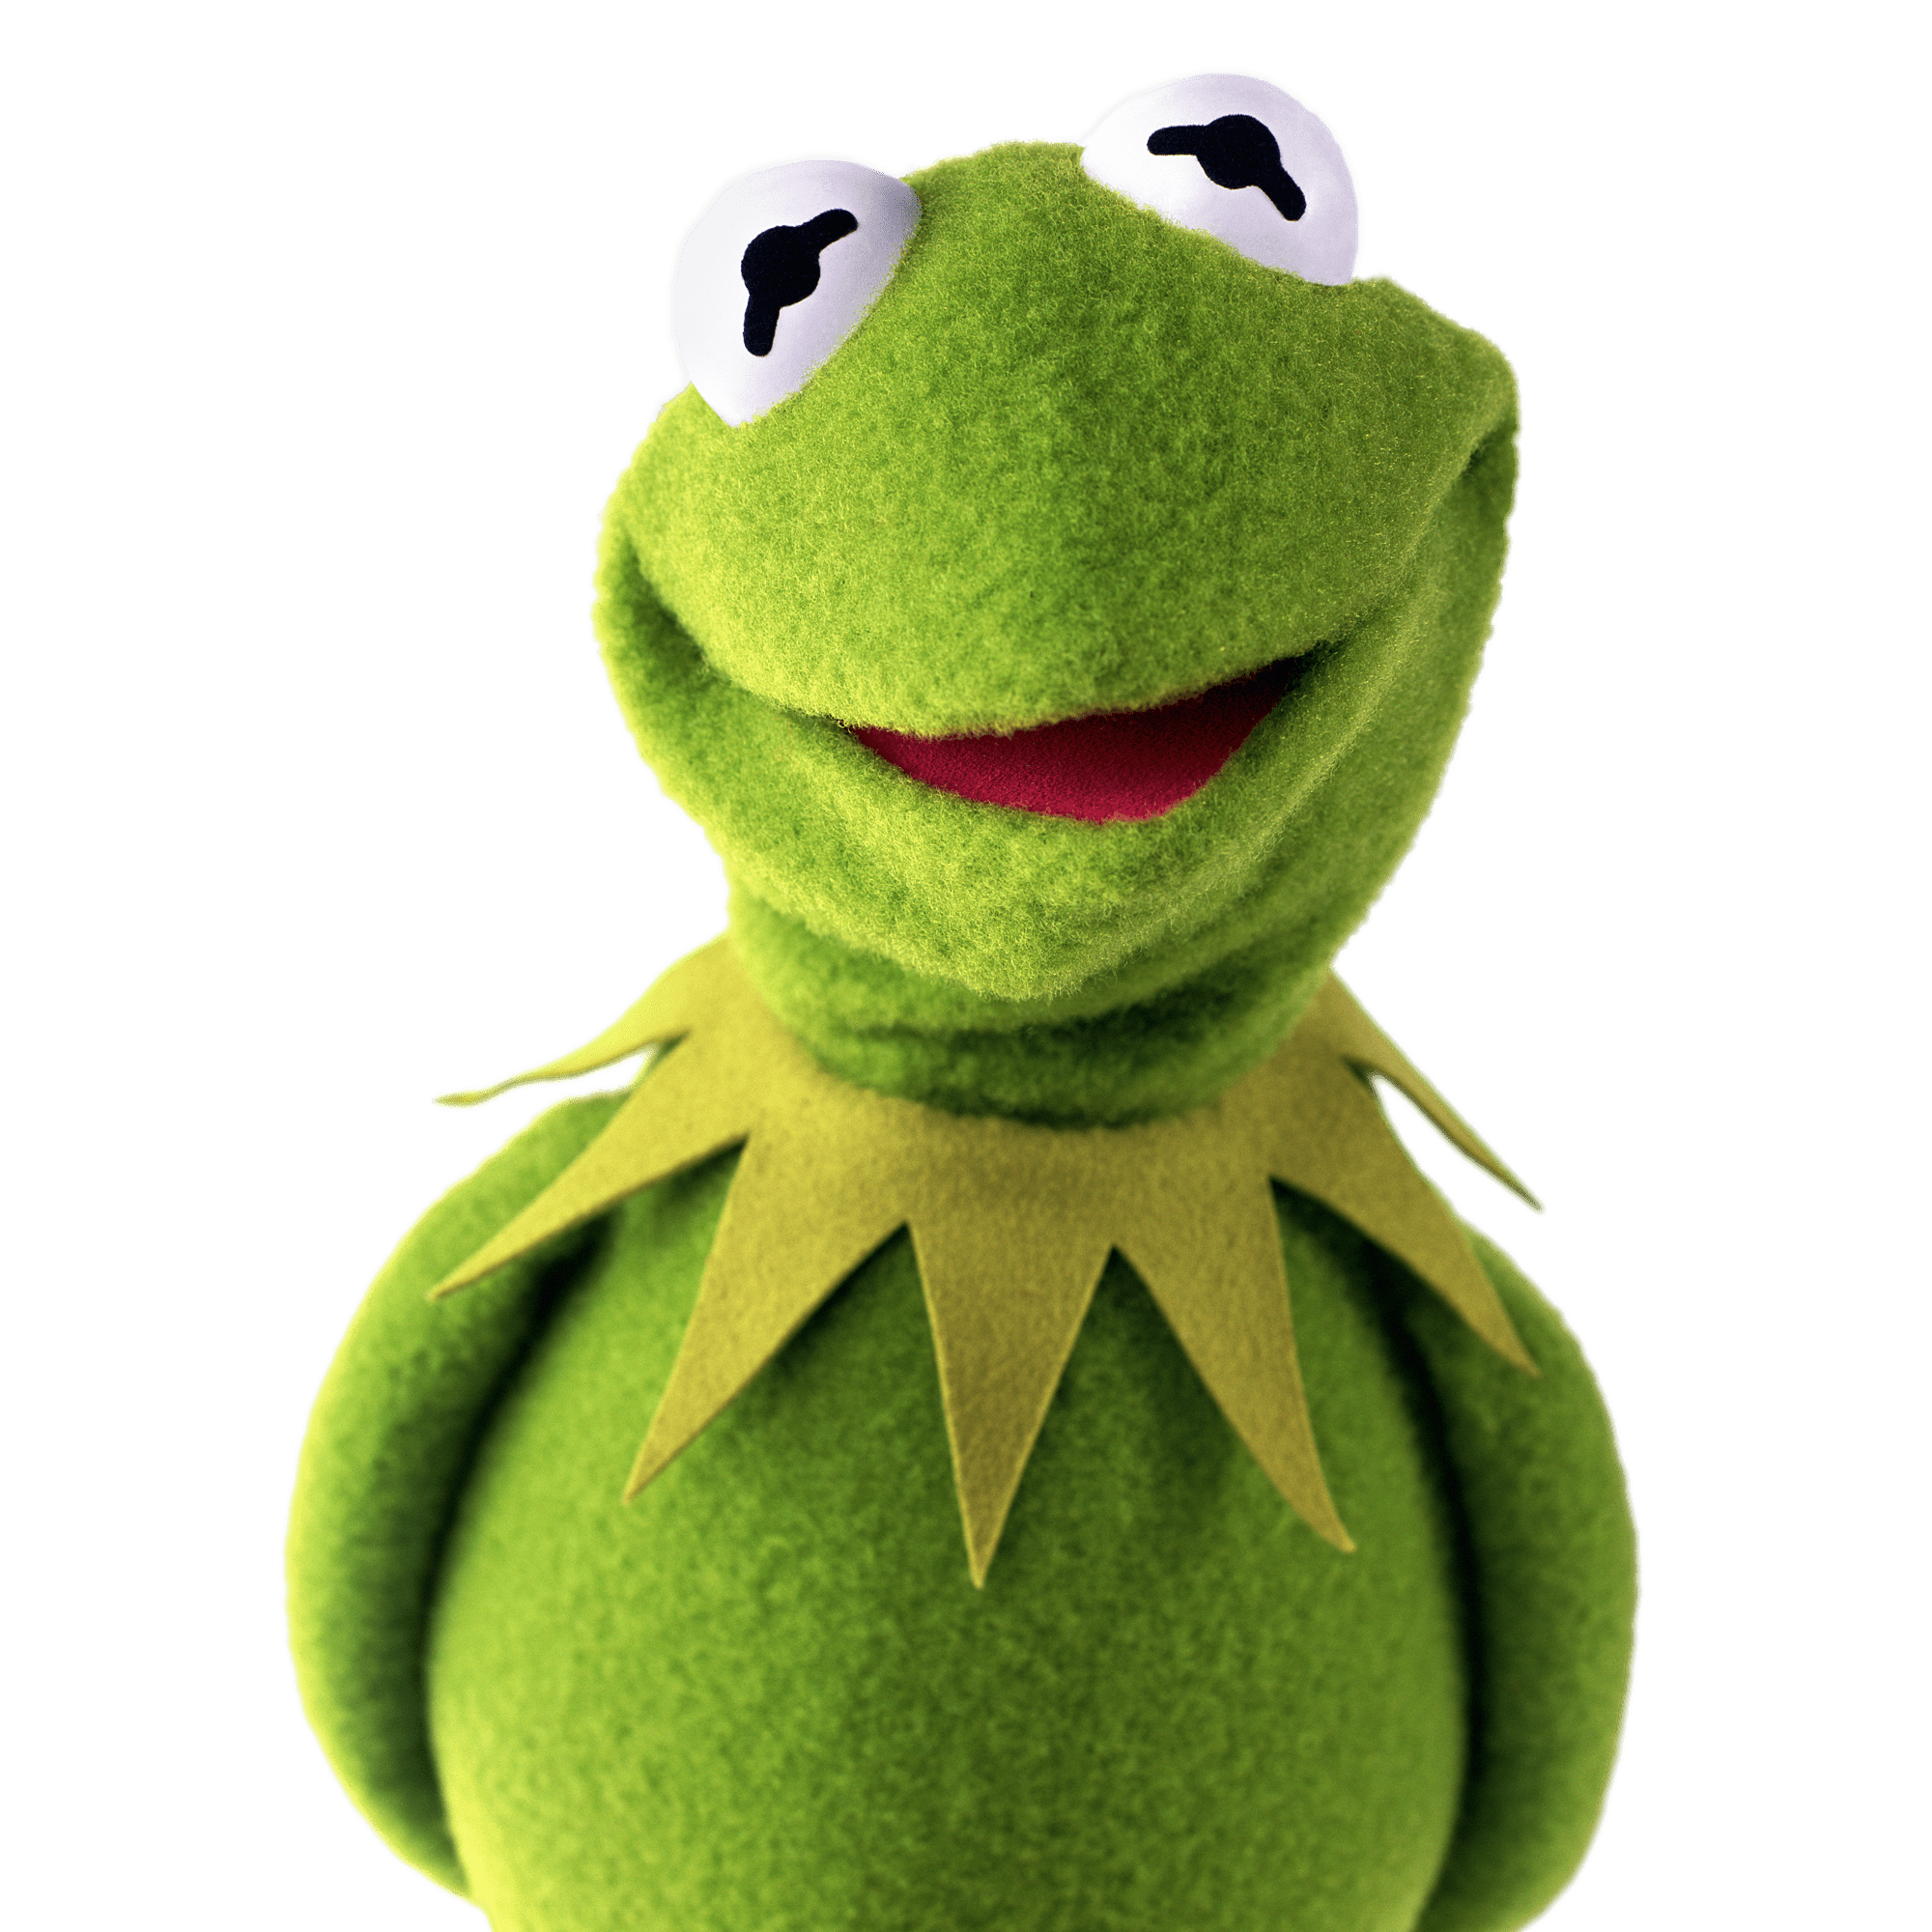 Kermit the Frog The Muppets Kermit The Frog